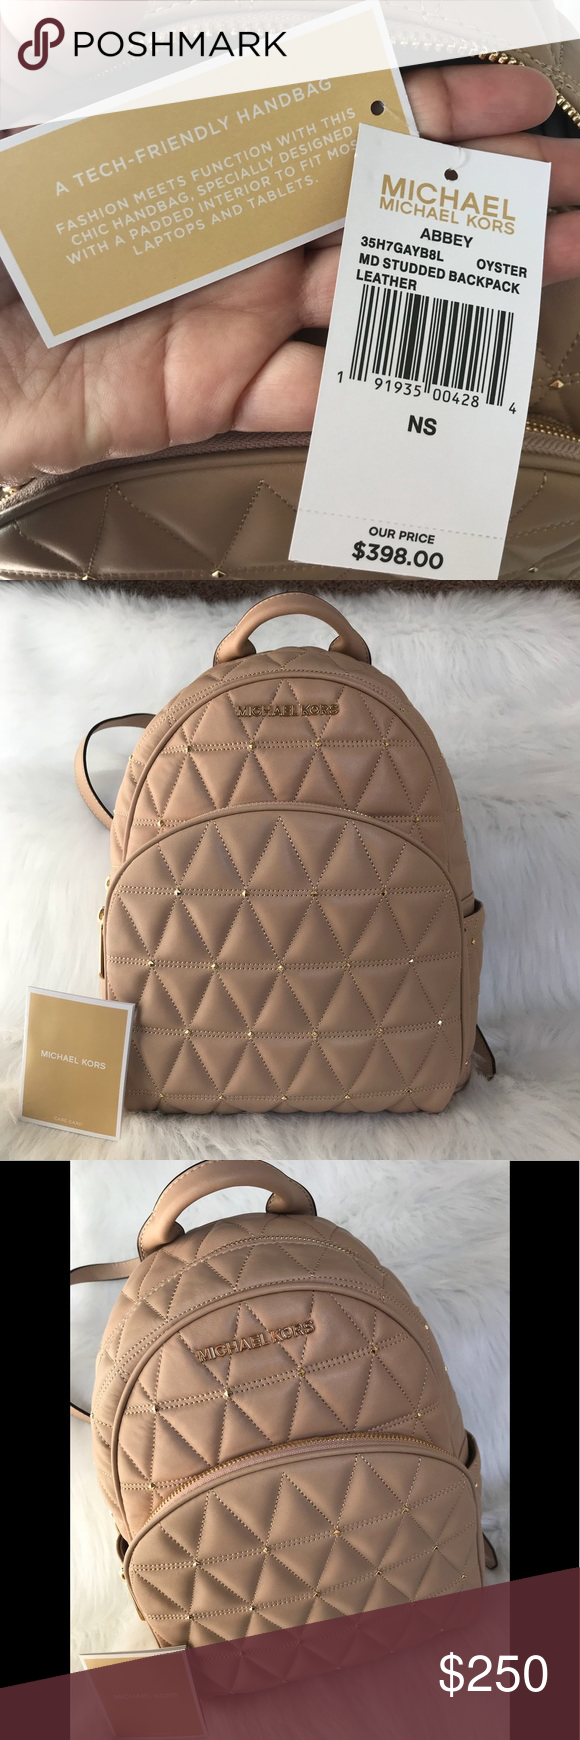 36b2d5789cd4 Michael Kors Abbey Medium gold studded backpack 🆕🆒Authentic Michael Kors  Abbey size medium backpack